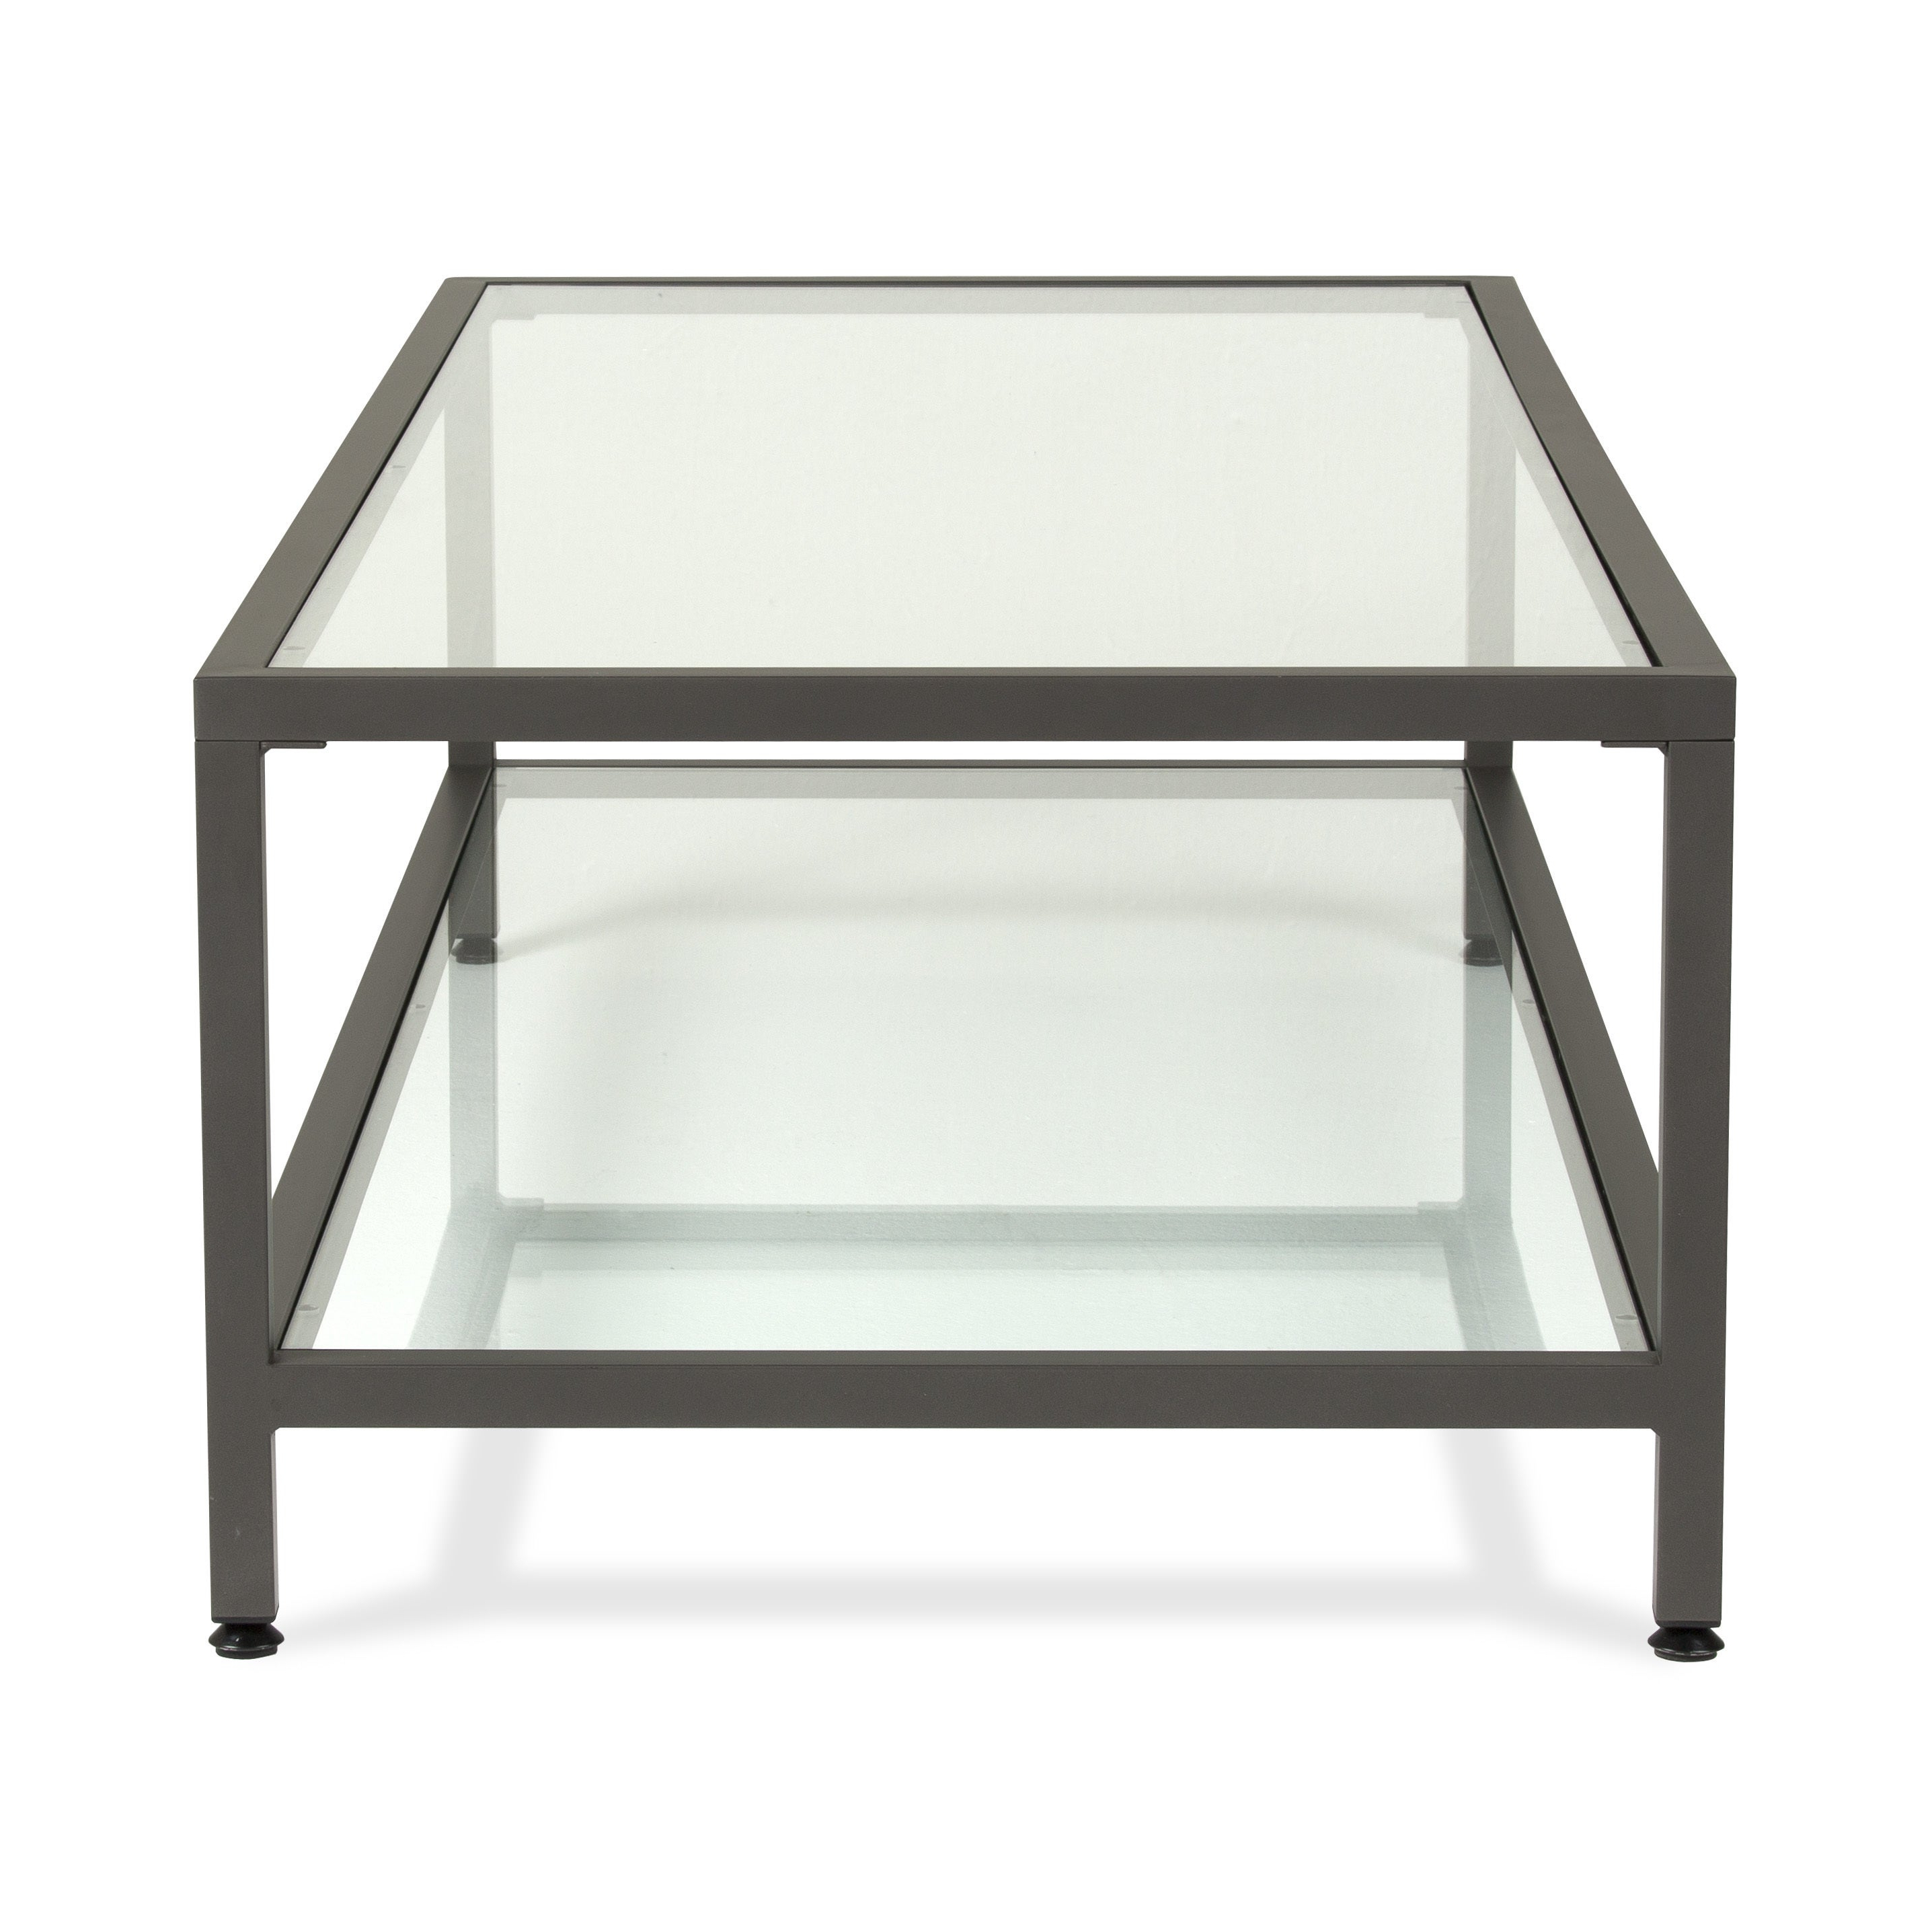 Carbon Loft Heimlich Metal/glass Rectangle Coffee Table Pertaining To Popular Carbon Loft Heimlich Metal Glass Rectangle Coffee Tables (View 6 of 20)